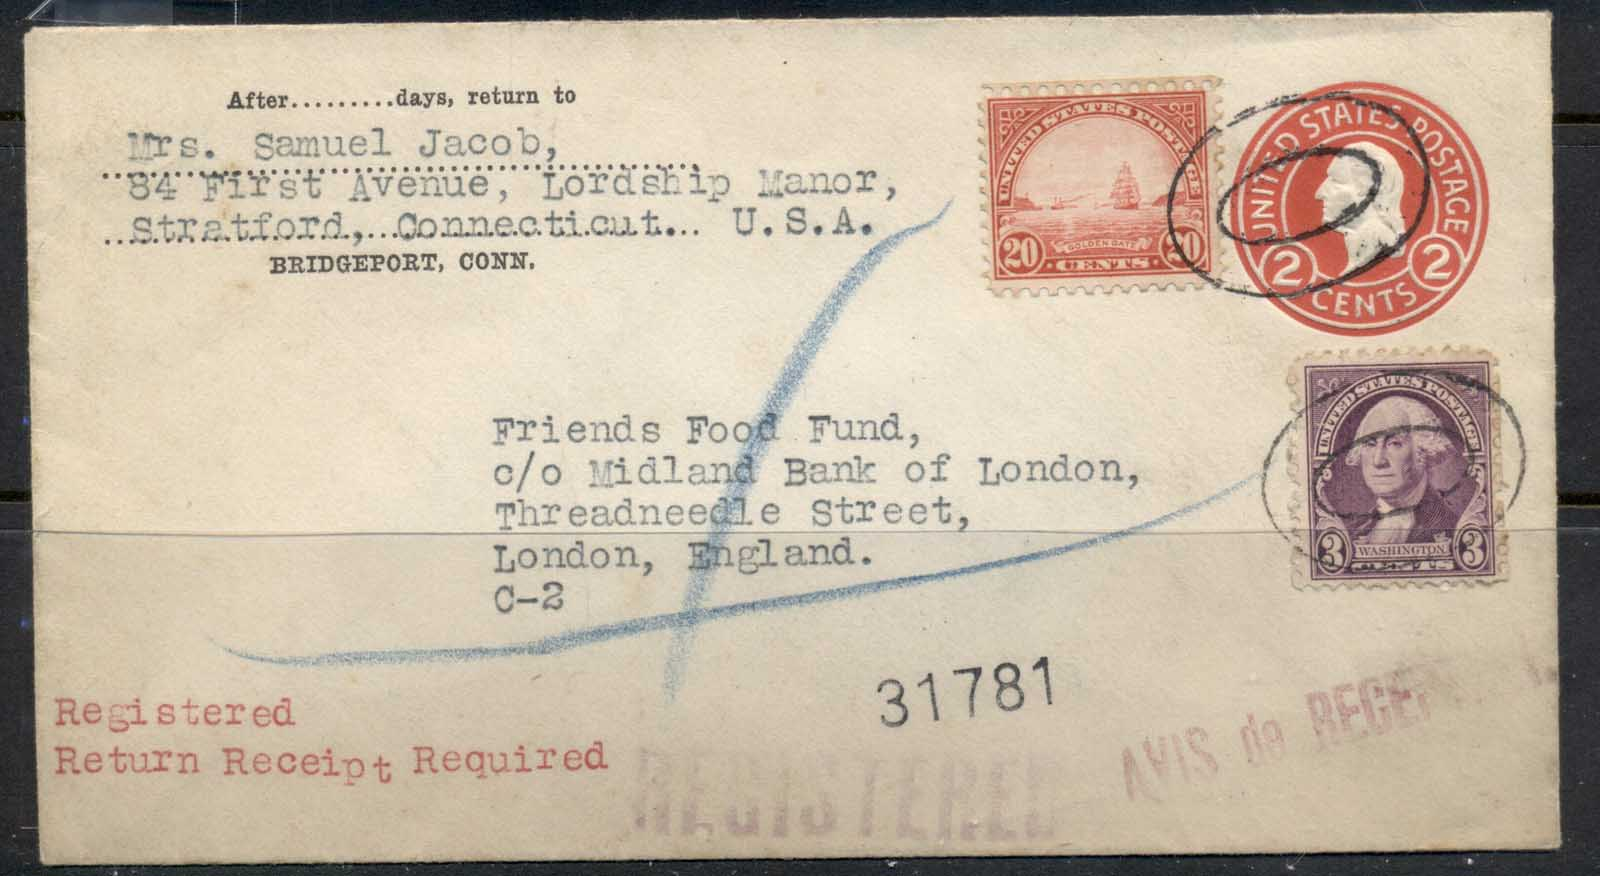 USA 1922-38 Fourth Bureau Uprated PSE mixed franking Golden gate 20c Registered Bridgeport 1937 cover